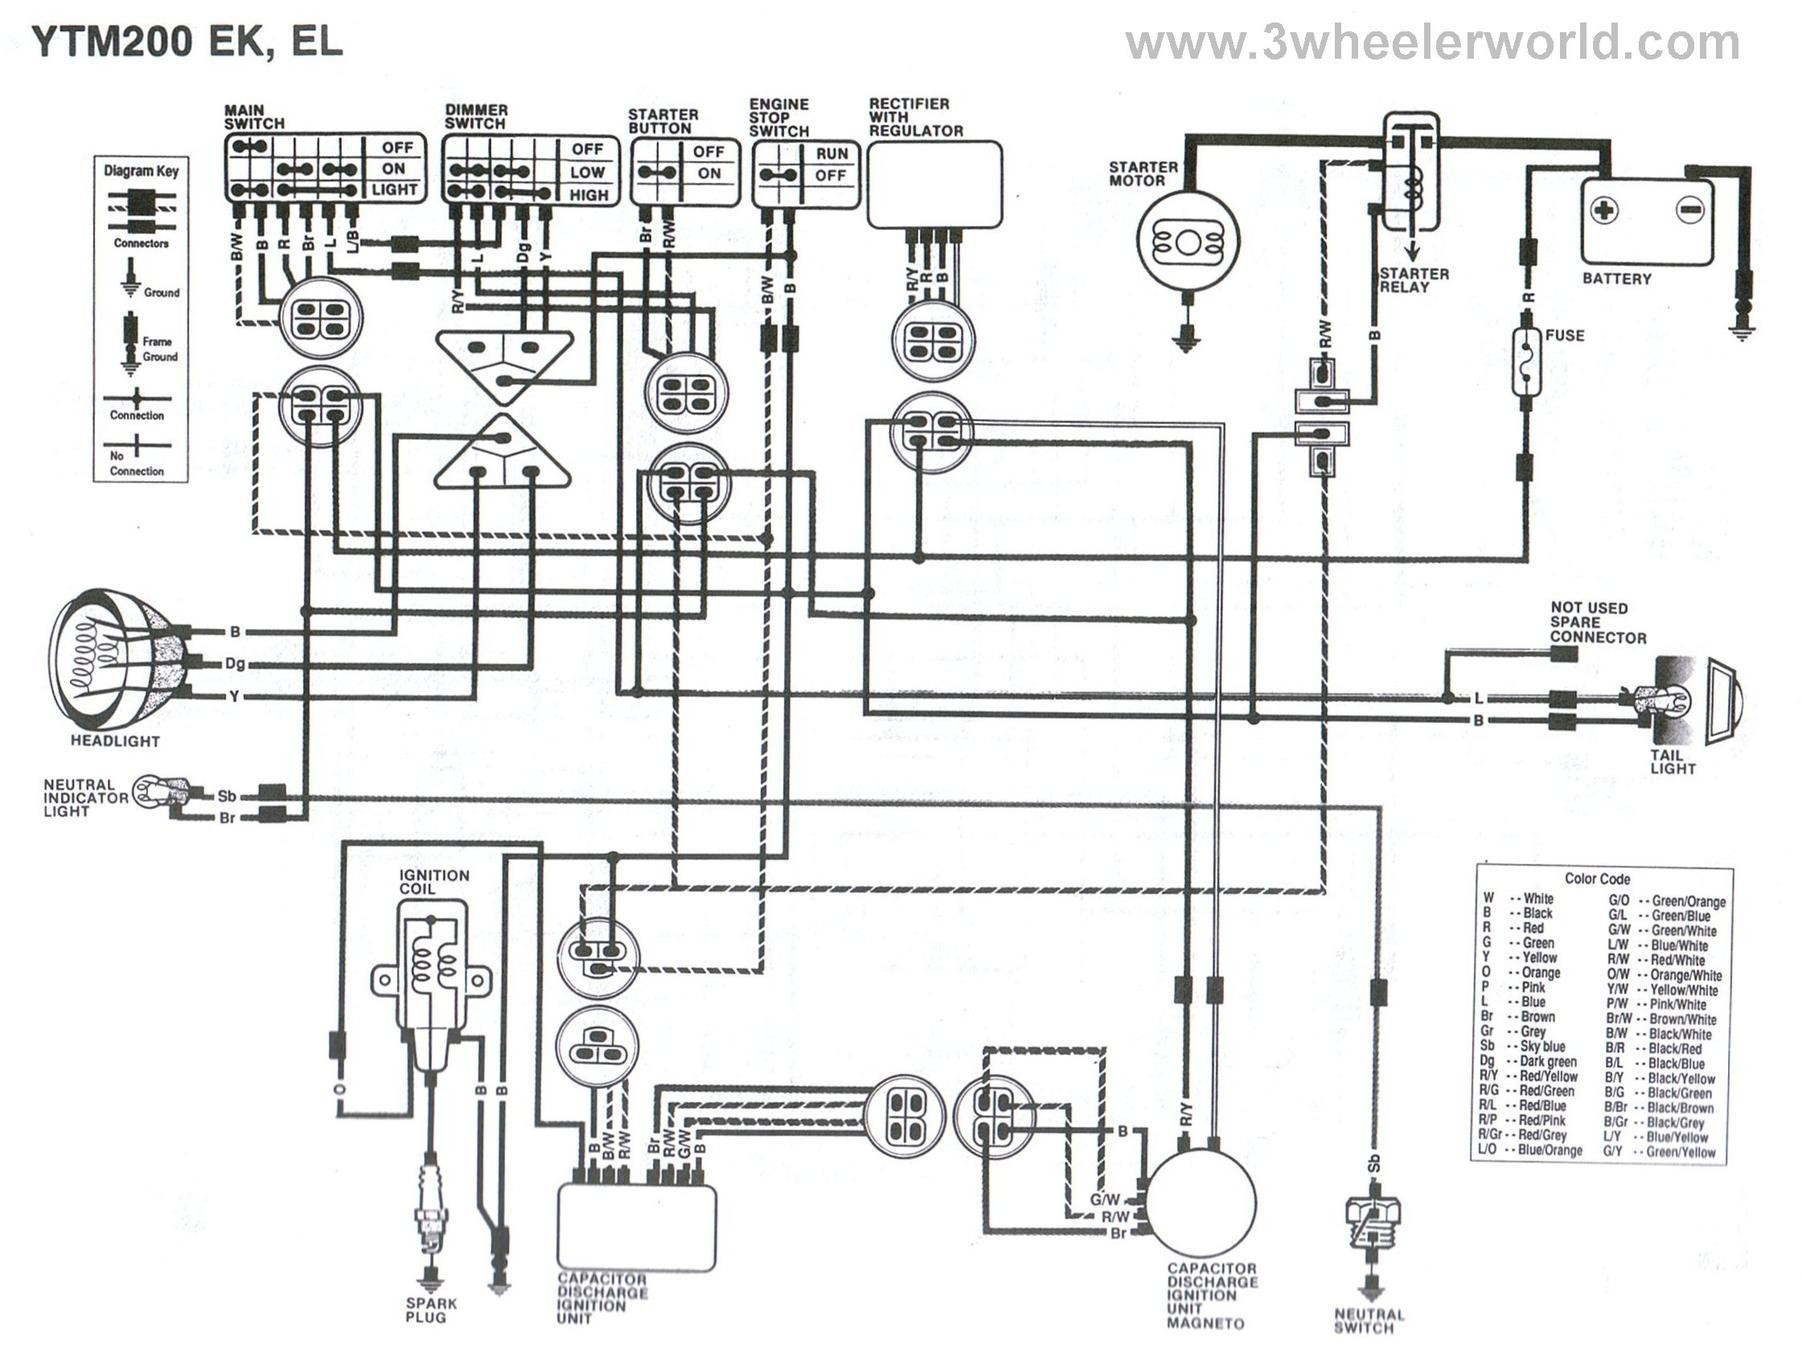 Yamaha Blaster Wiring Diagram Awesome Stock Diagrams Stuning - Yamaha Blaster Wiring Diagram